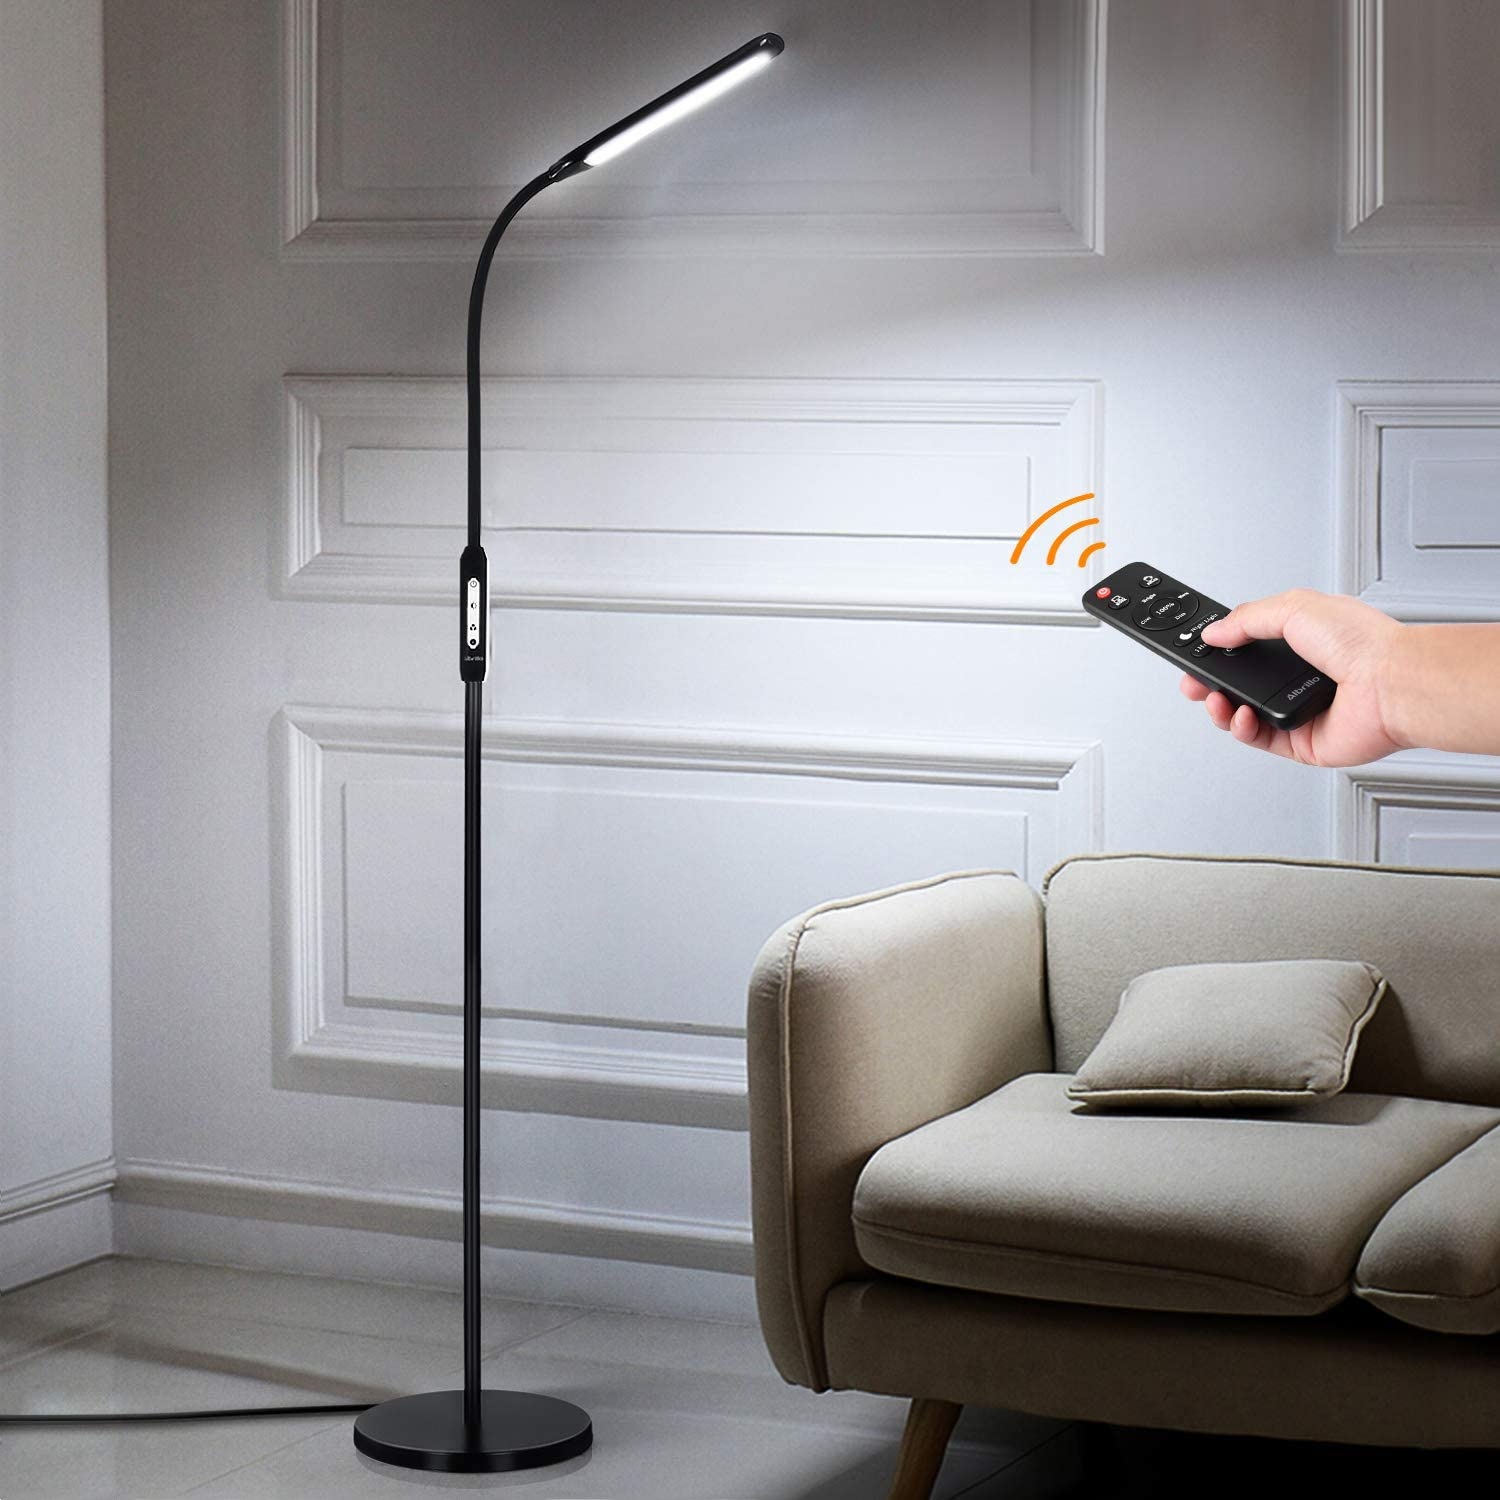 Albrillo Dimmable Led Floor Lamp With Remote Control And Timer